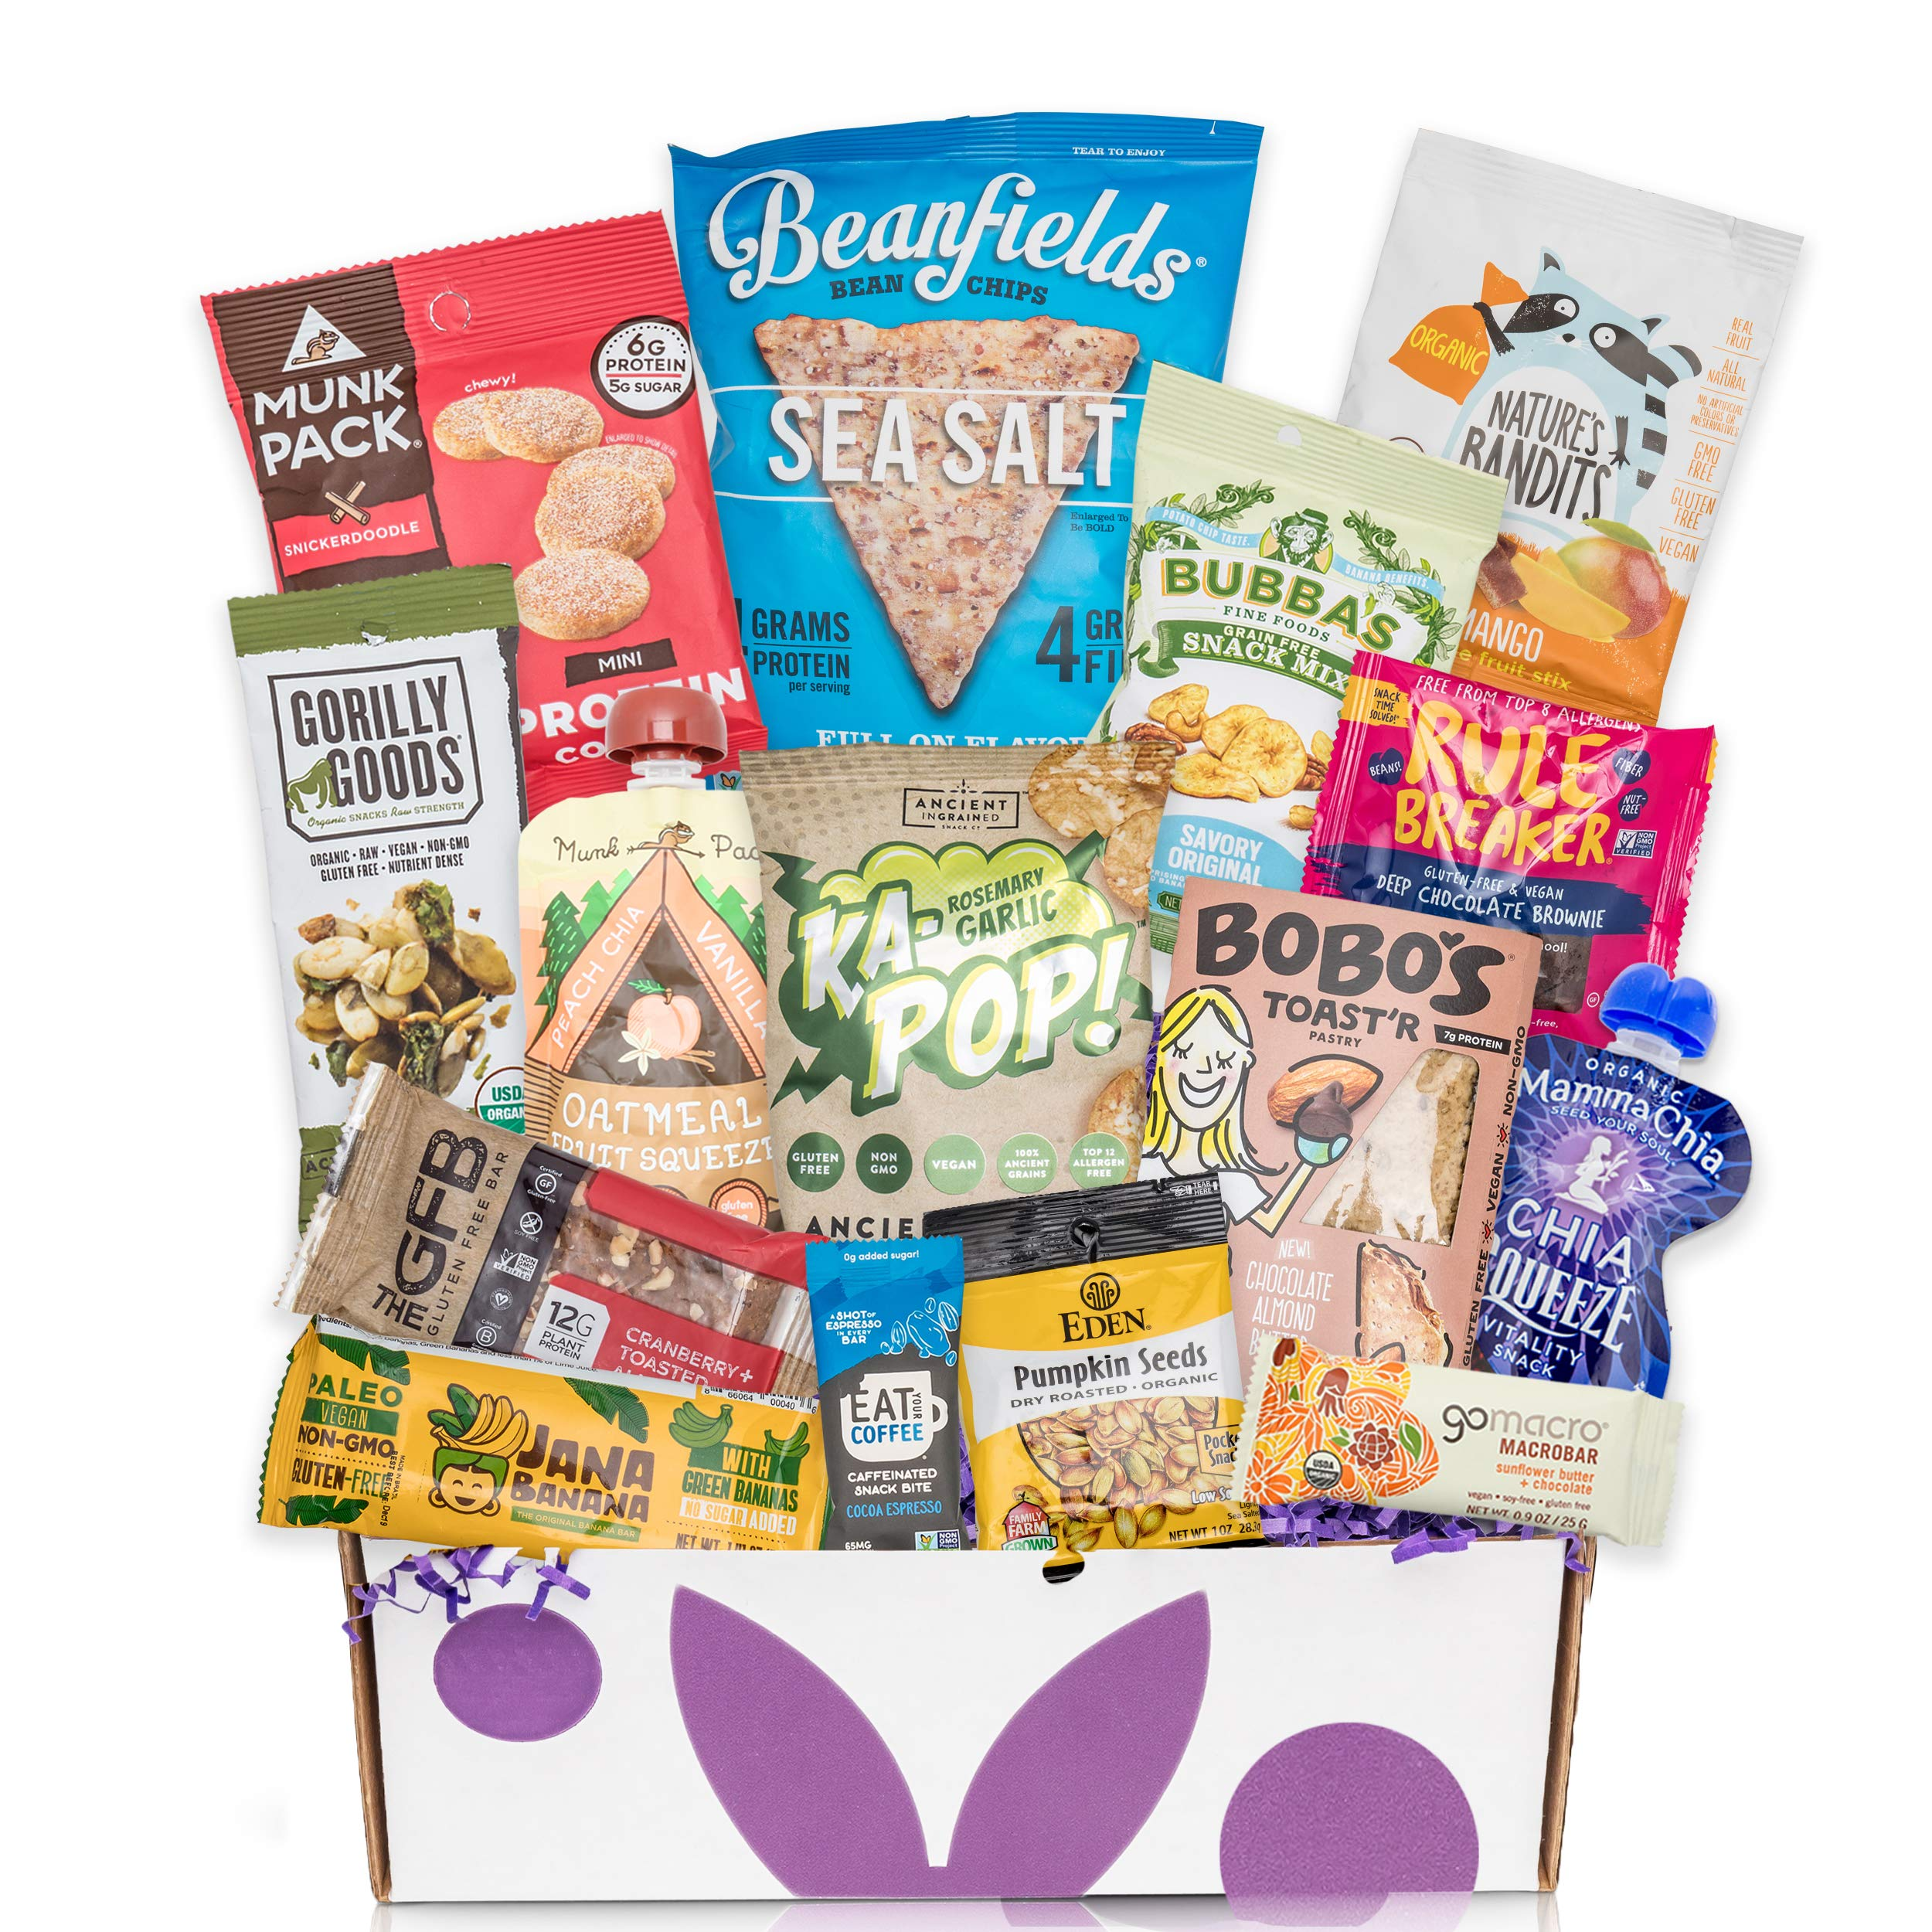 Vegan Gluten Free Dairy Free Healthy Snacks: Perfect College Care Package, Camp Care Packages, Vacation Packages Snack Gift Box by BUNNY · JAMES ·